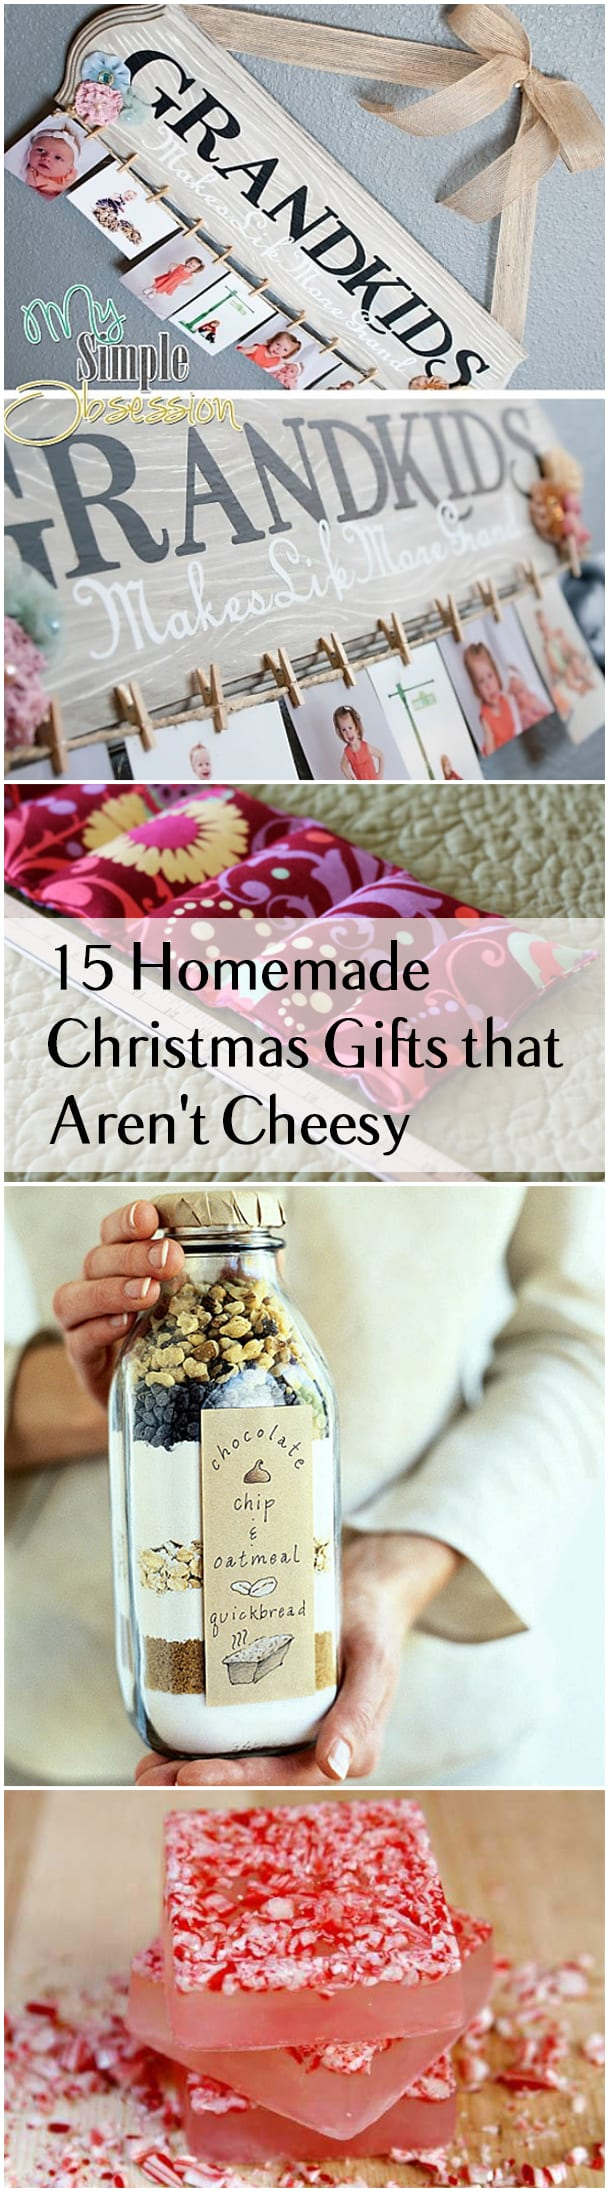 Homemade Christmas Gifts Ideas.15 Homemade Christmas Gifts That Aren T Cheesy